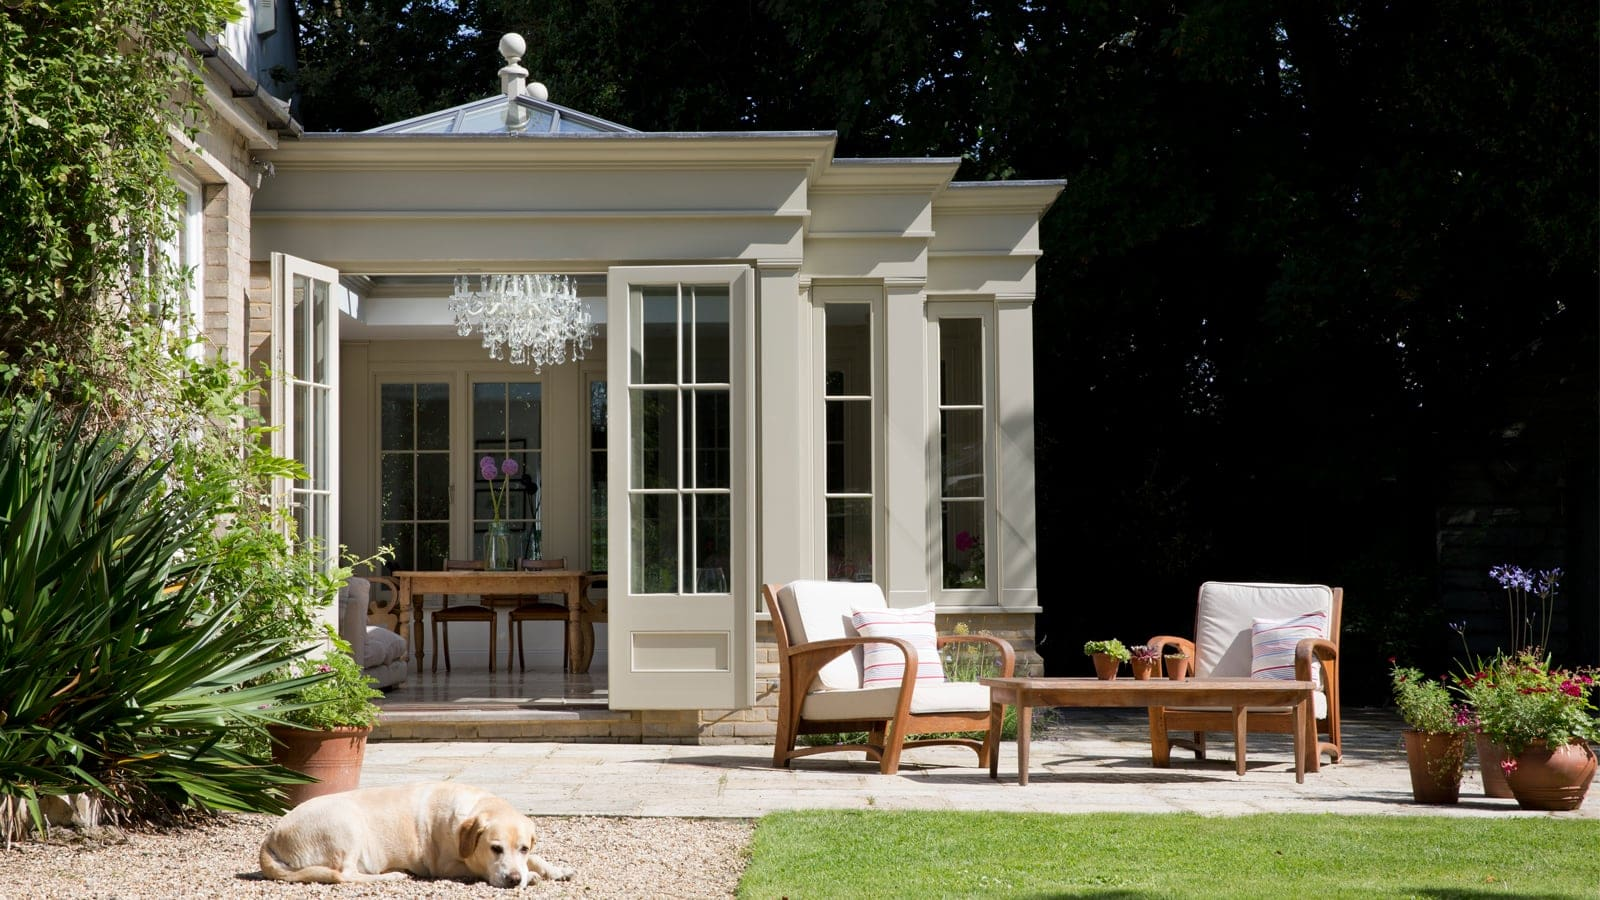 New orangery addition blending seamlessly with the architecture of the original house